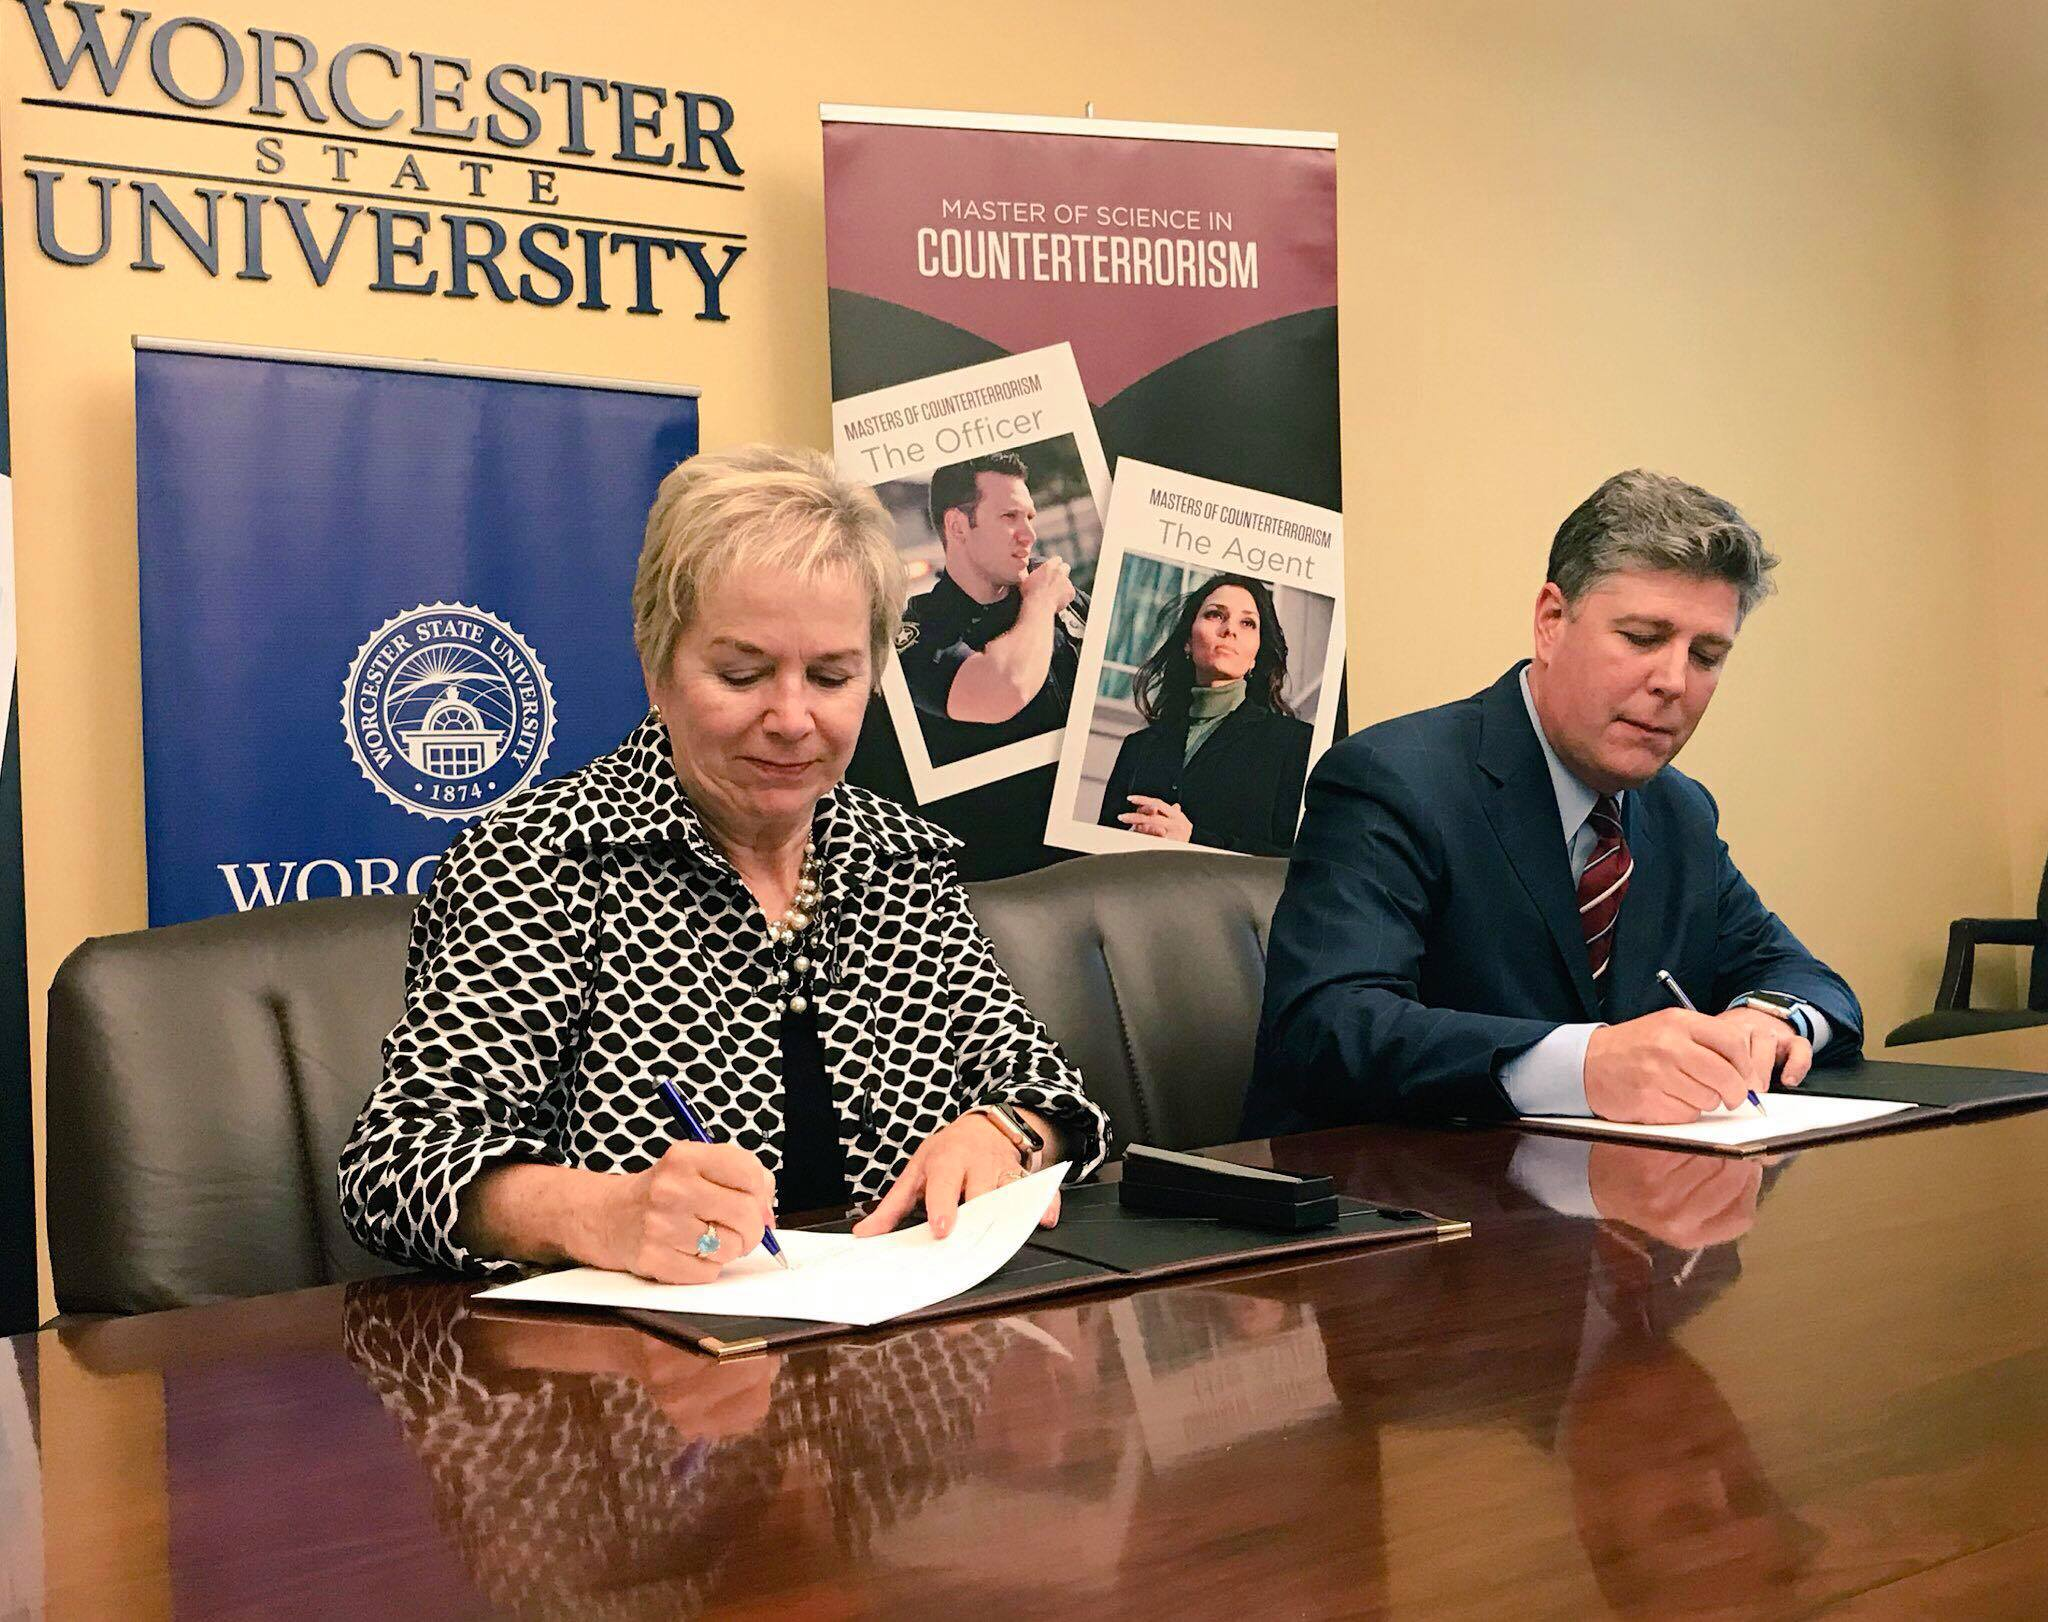 Partnership between colleges provides pathway to Counterterrorism Master's